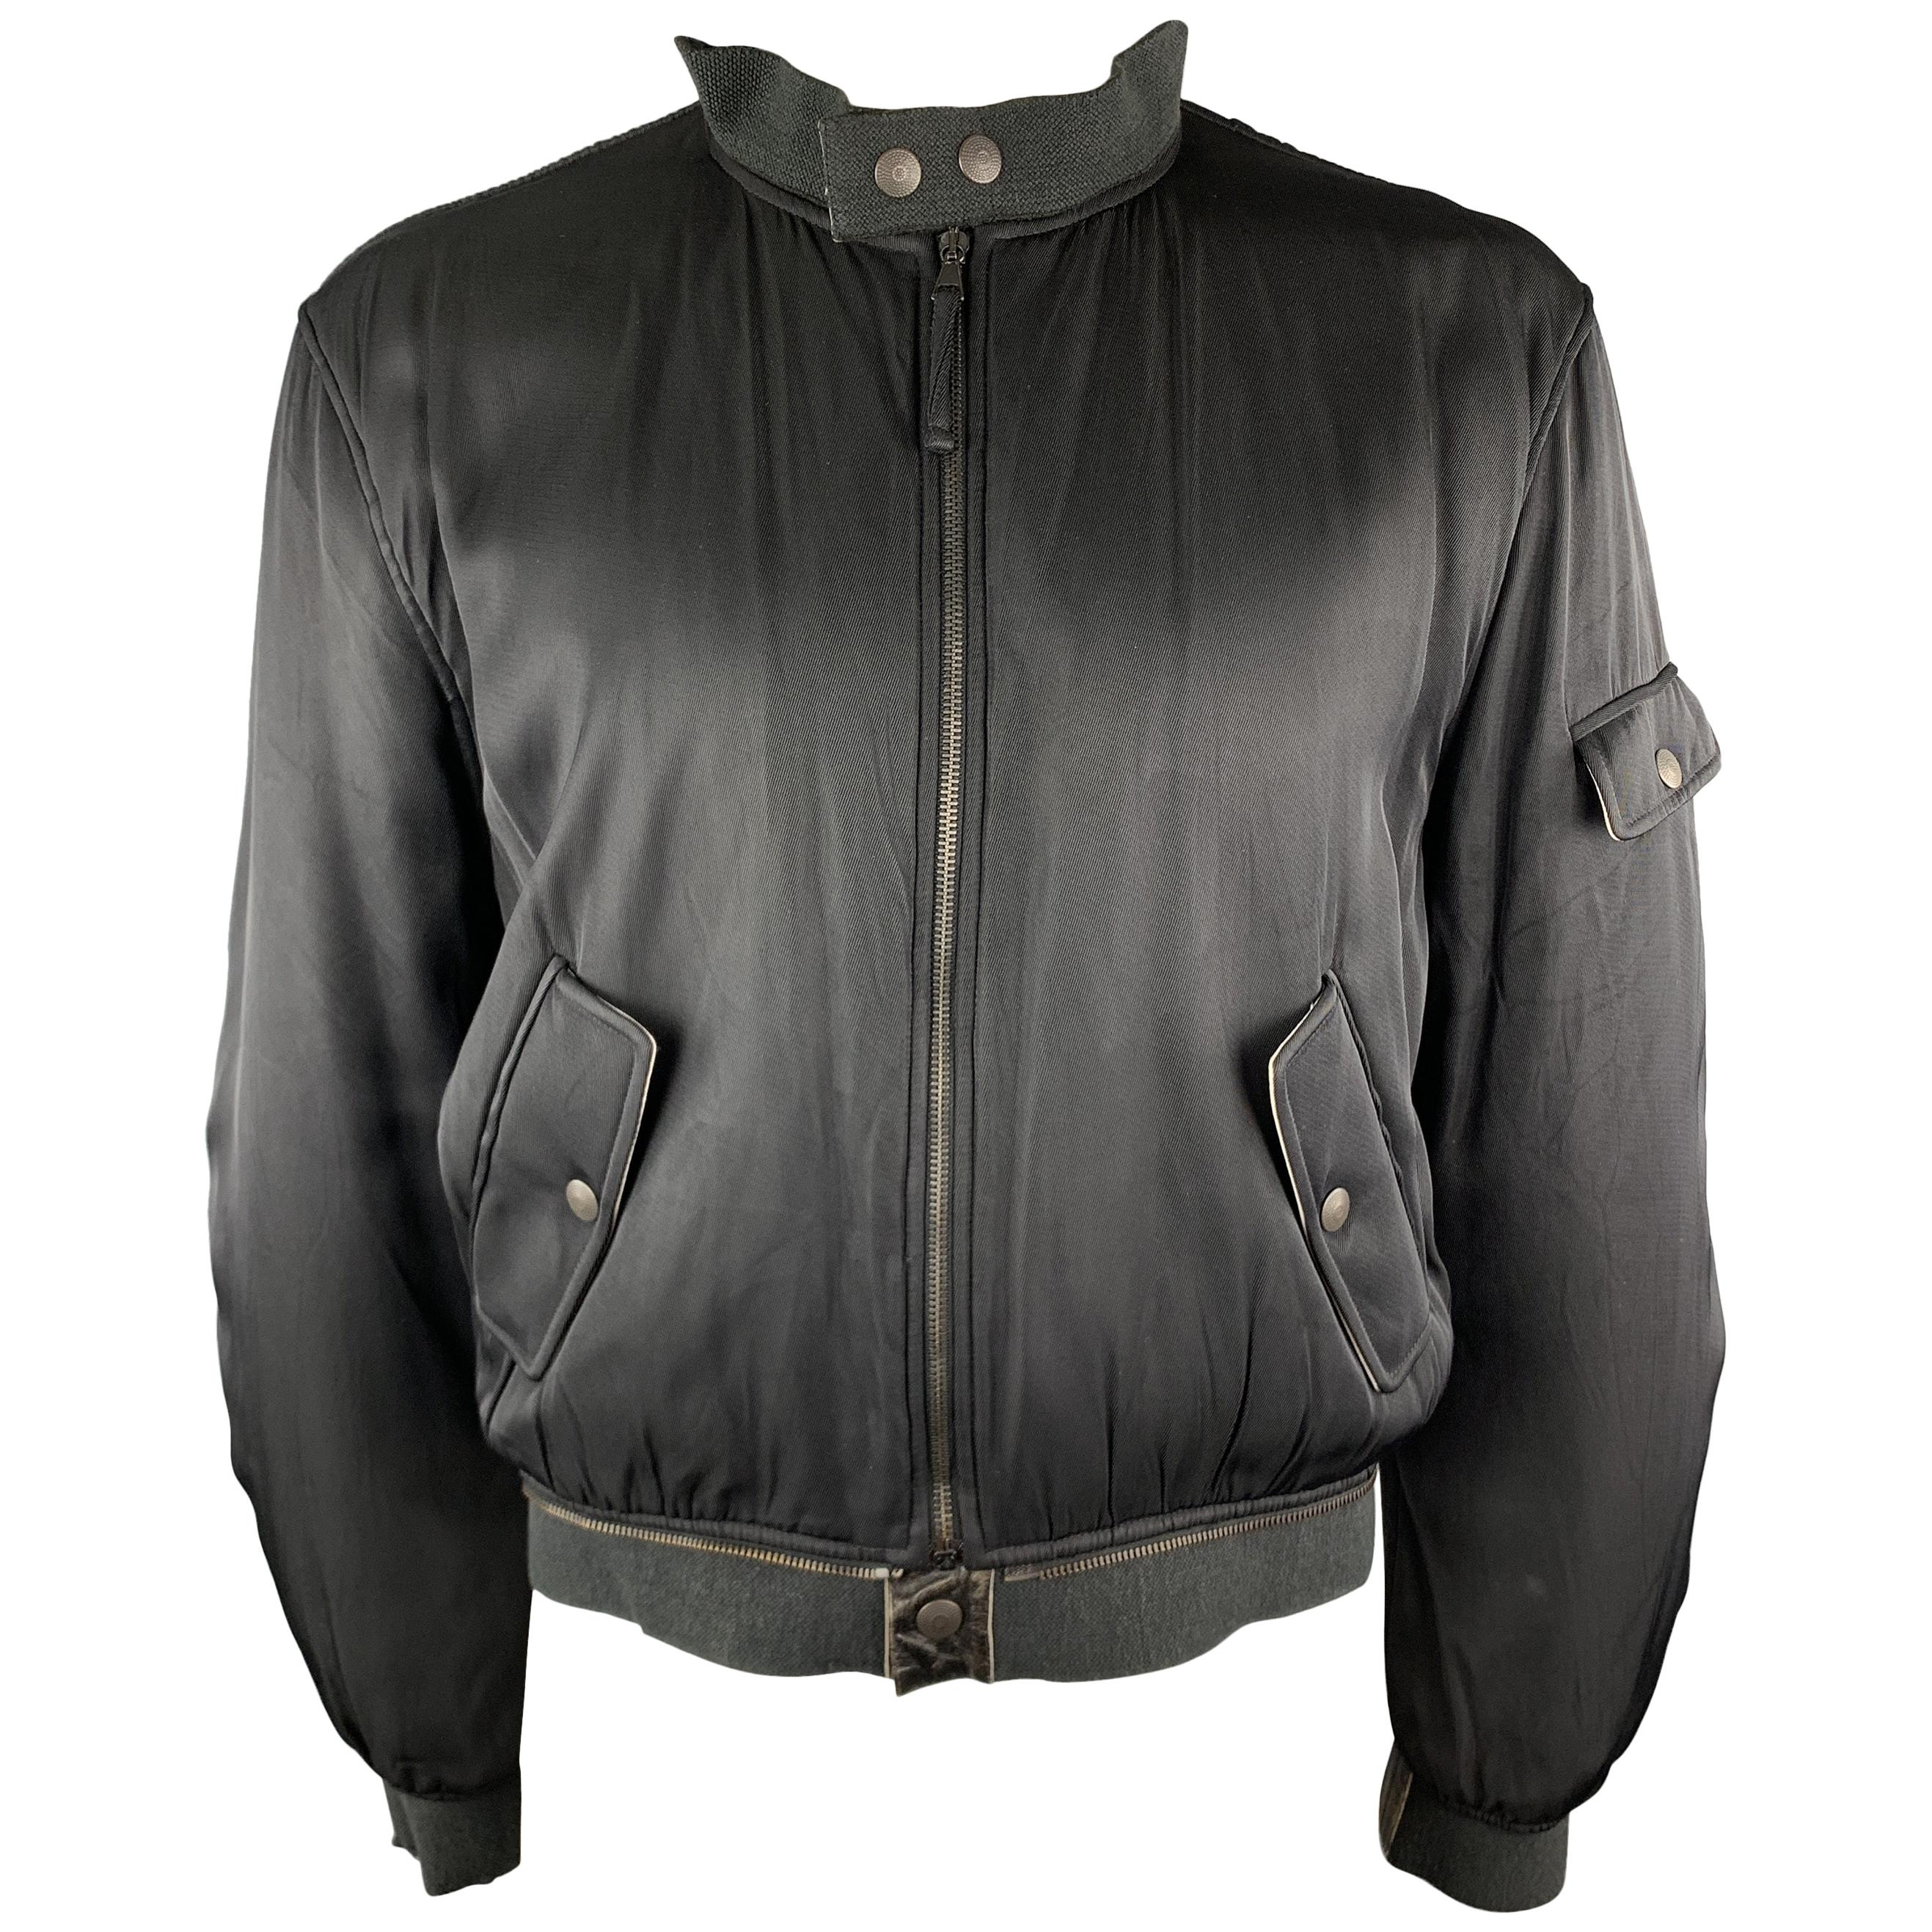 cffff79a0 Vintage Jean Paul Gaultier Jackets - 130 For Sale at 1stdibs